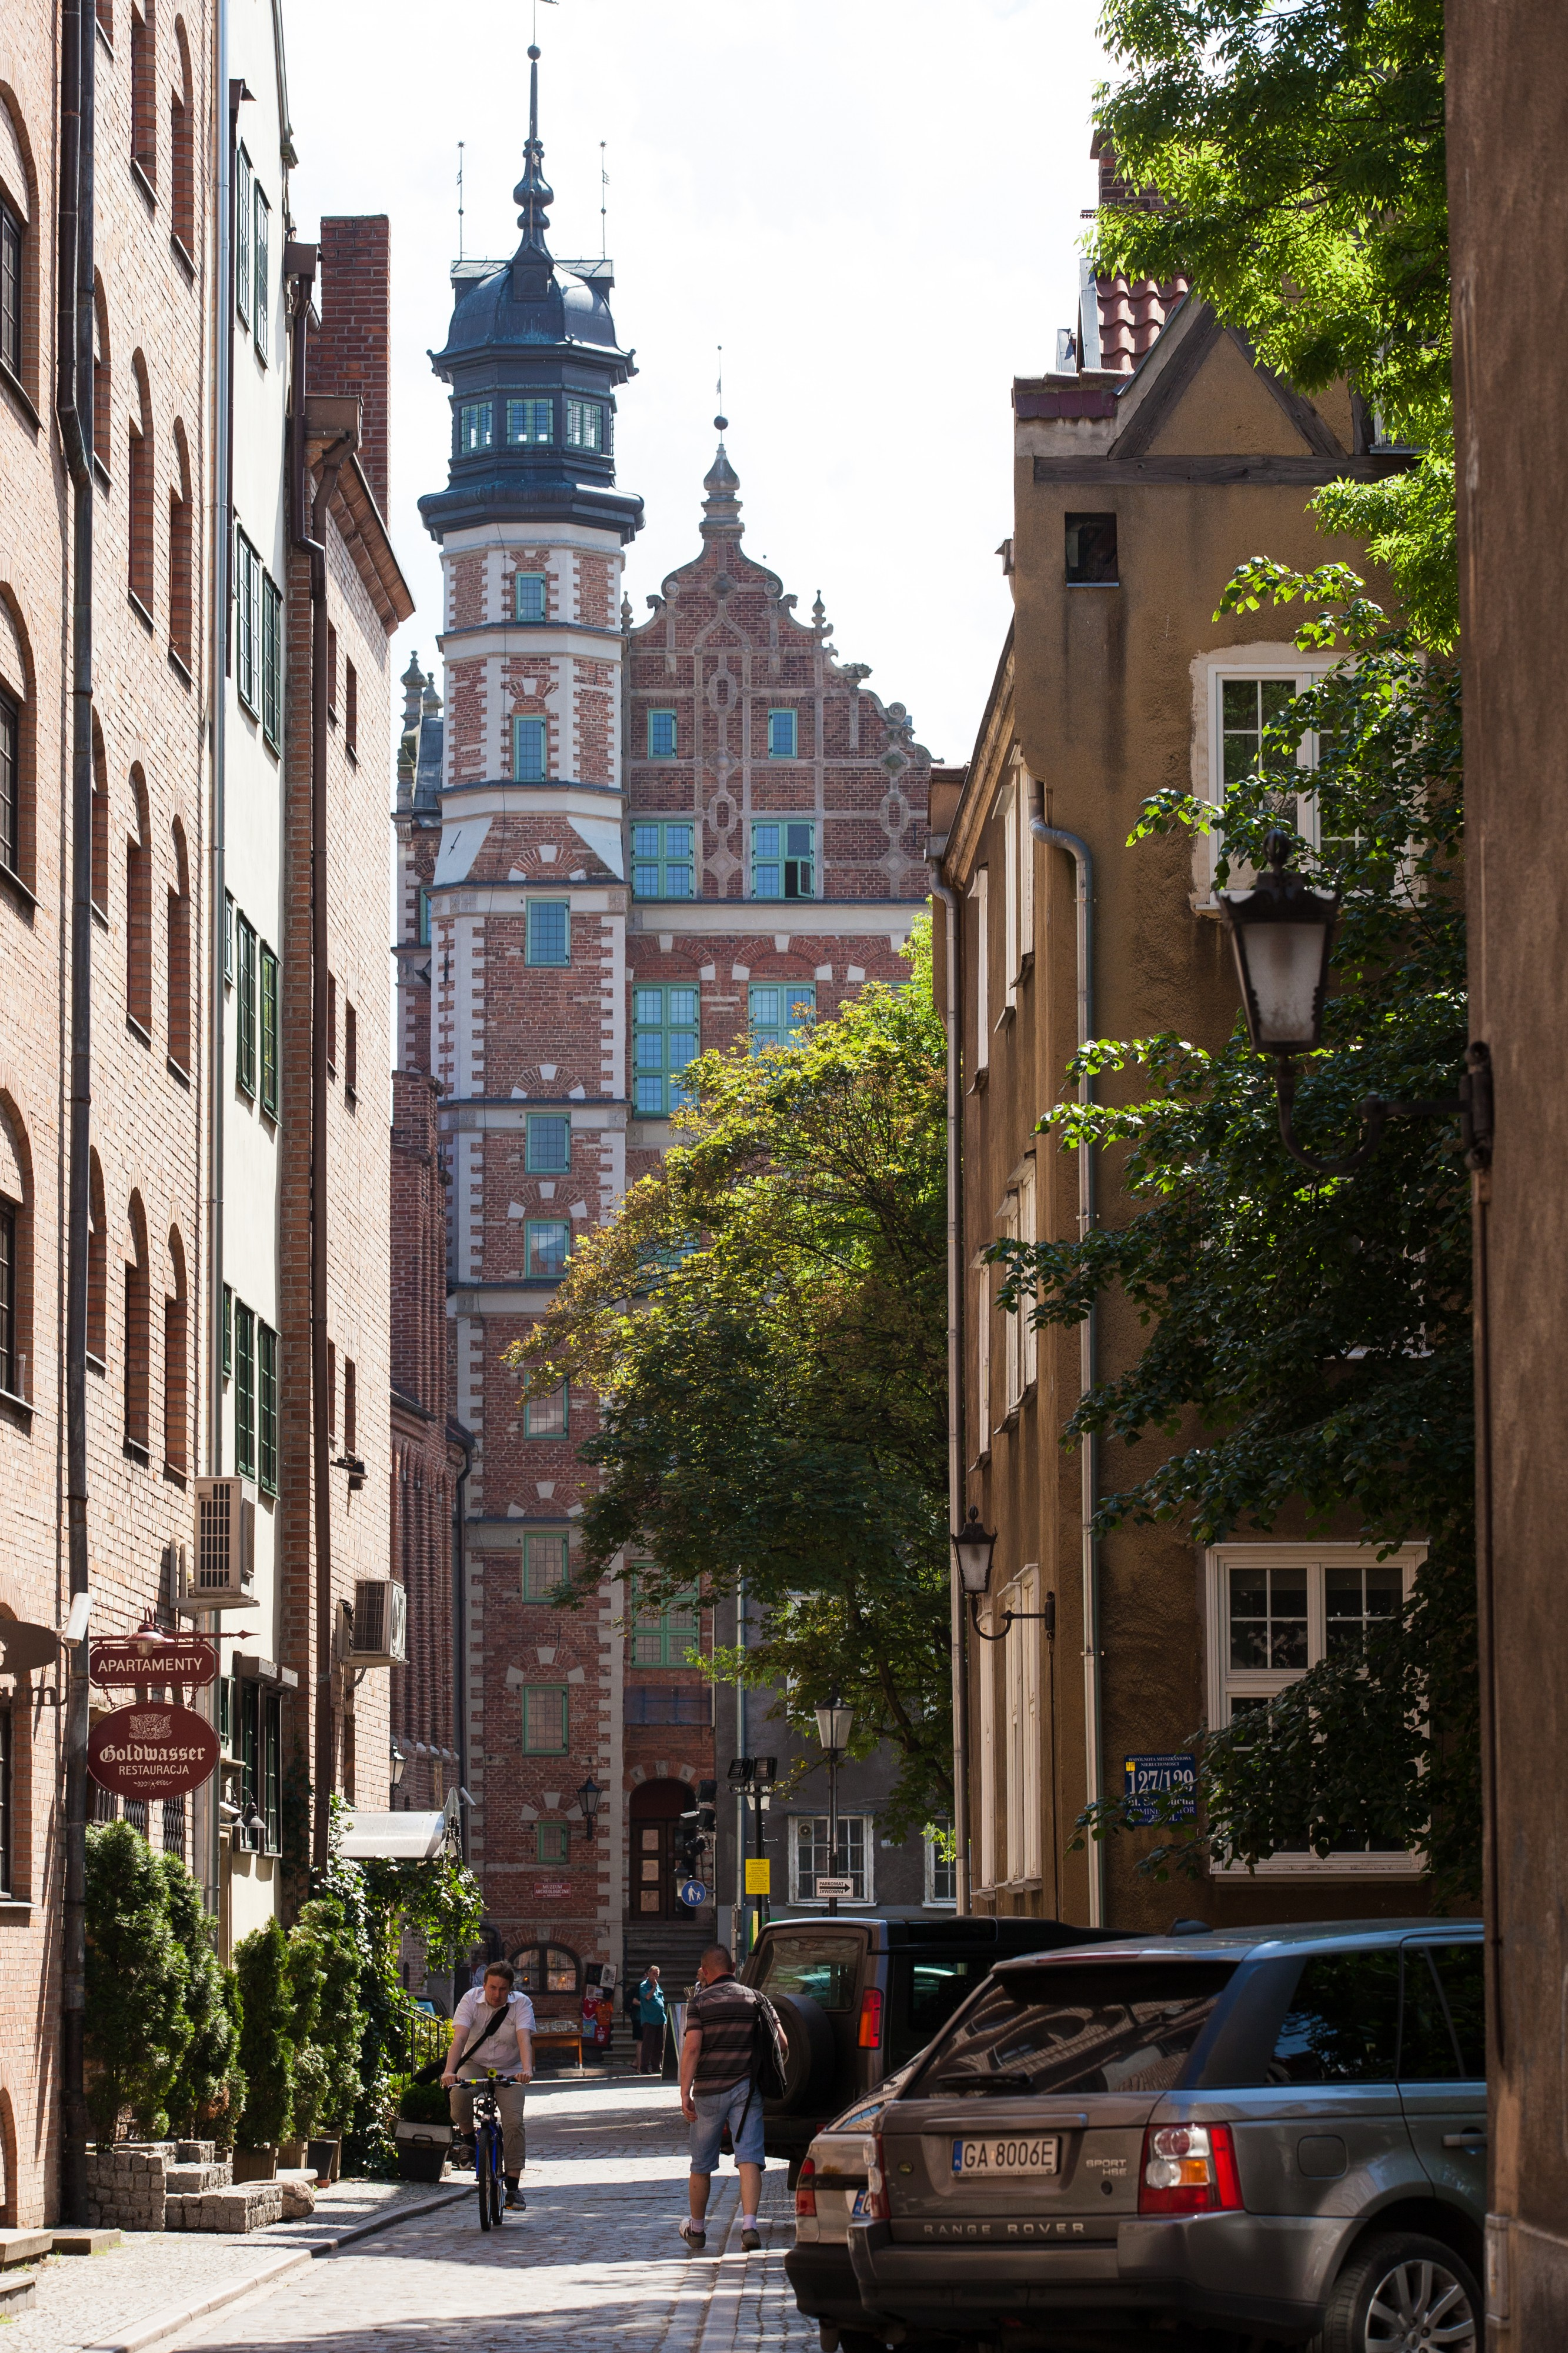 Gdansk city, Poland, June 2014, picture 28